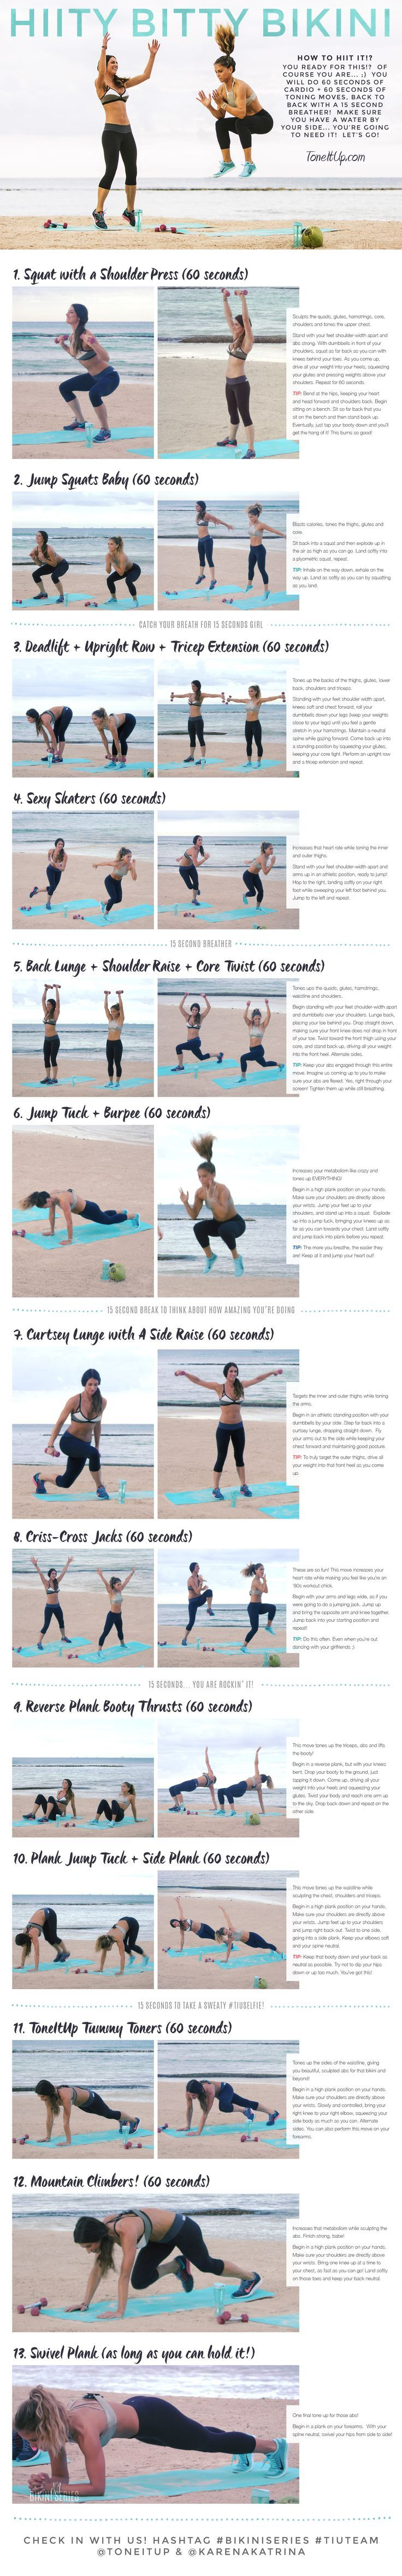 Brace yourself for a heart pumping, metabolism loving, sweat drenching, high intensity,workout! This is your NEW HIITy BITTY BIKINI routine!! fast diet bikini